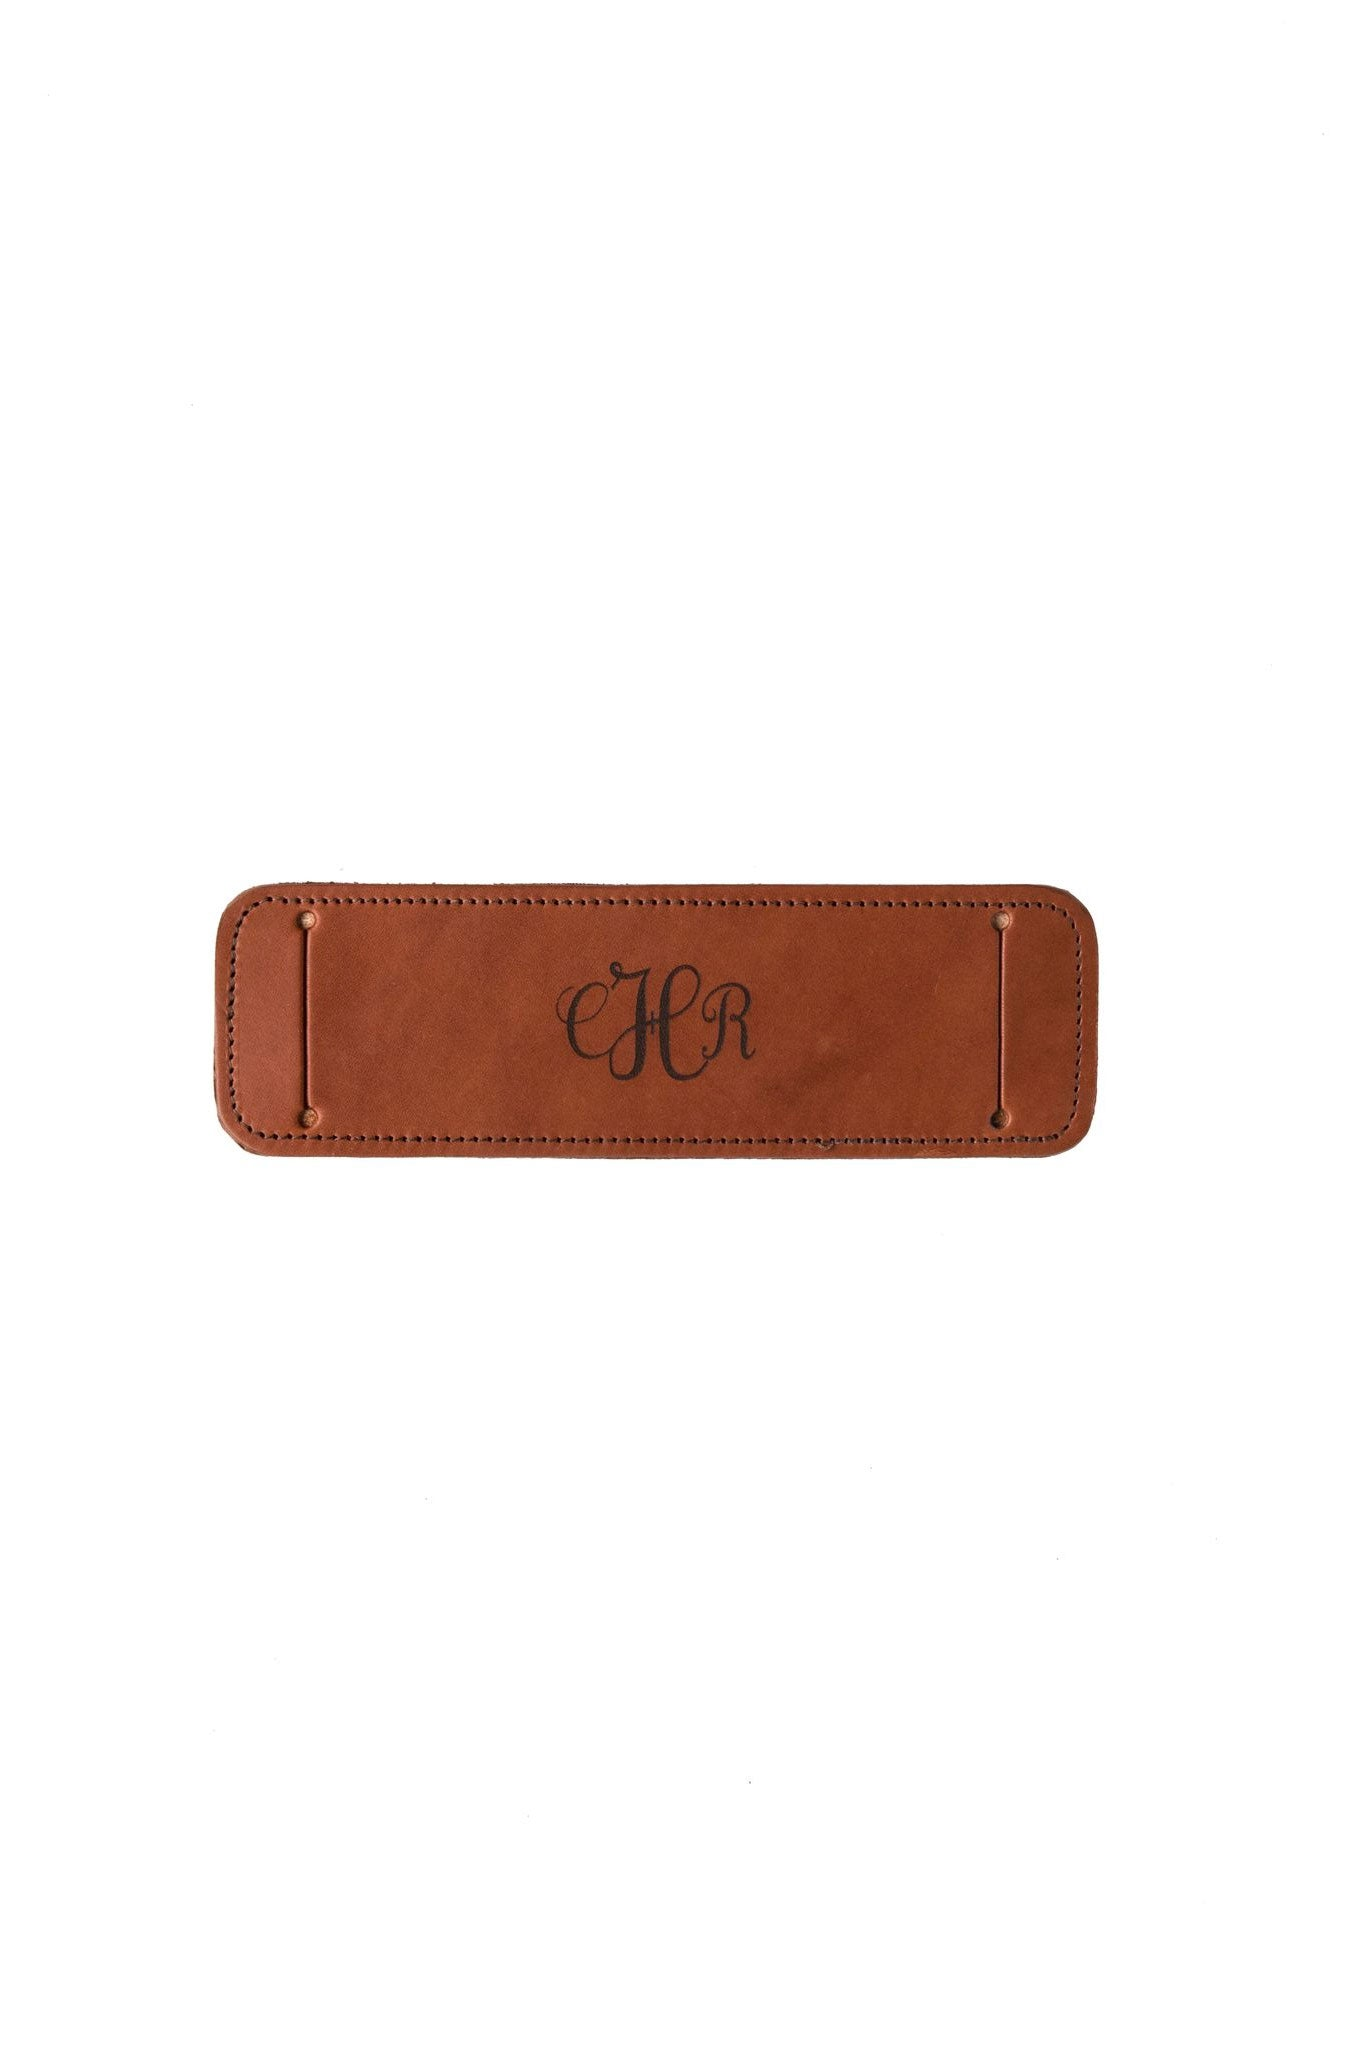 FOTO | Leather Shoulder Pad - a cognac brown genuine leather camera strap shoulder pad that can be personalized with a monogram, text or business logo making it the perfect personalized gift.